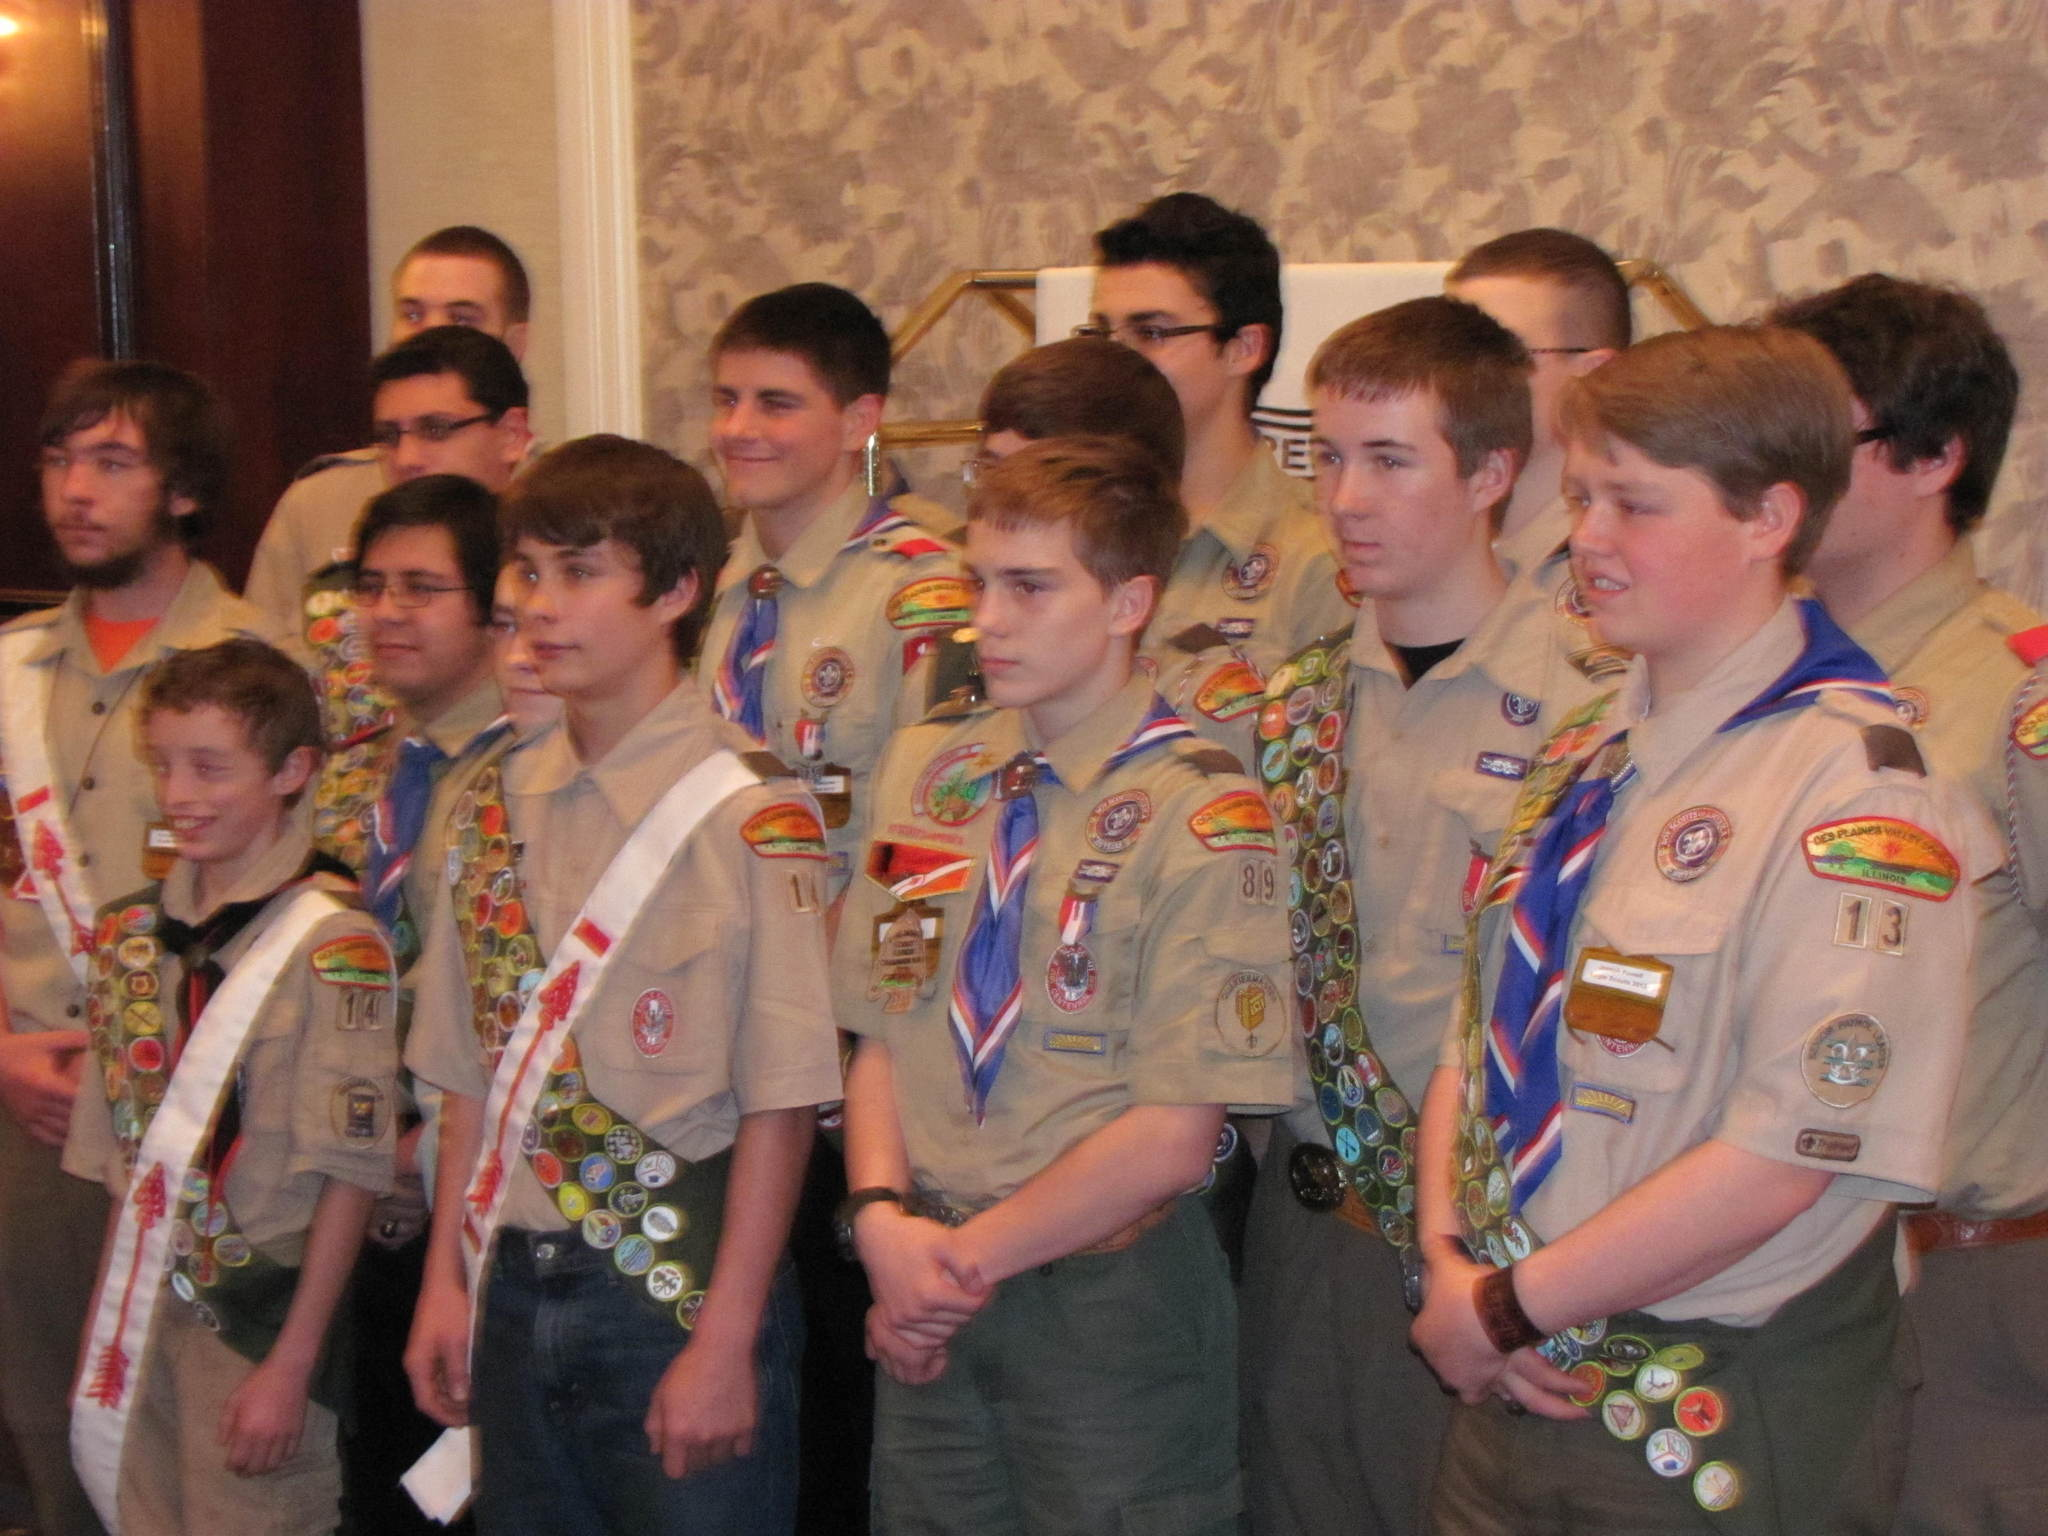 Matt The Scout Boy Credits Version 2: Boy Scouts Celebrate Historic Number Of Eagle Scouts For